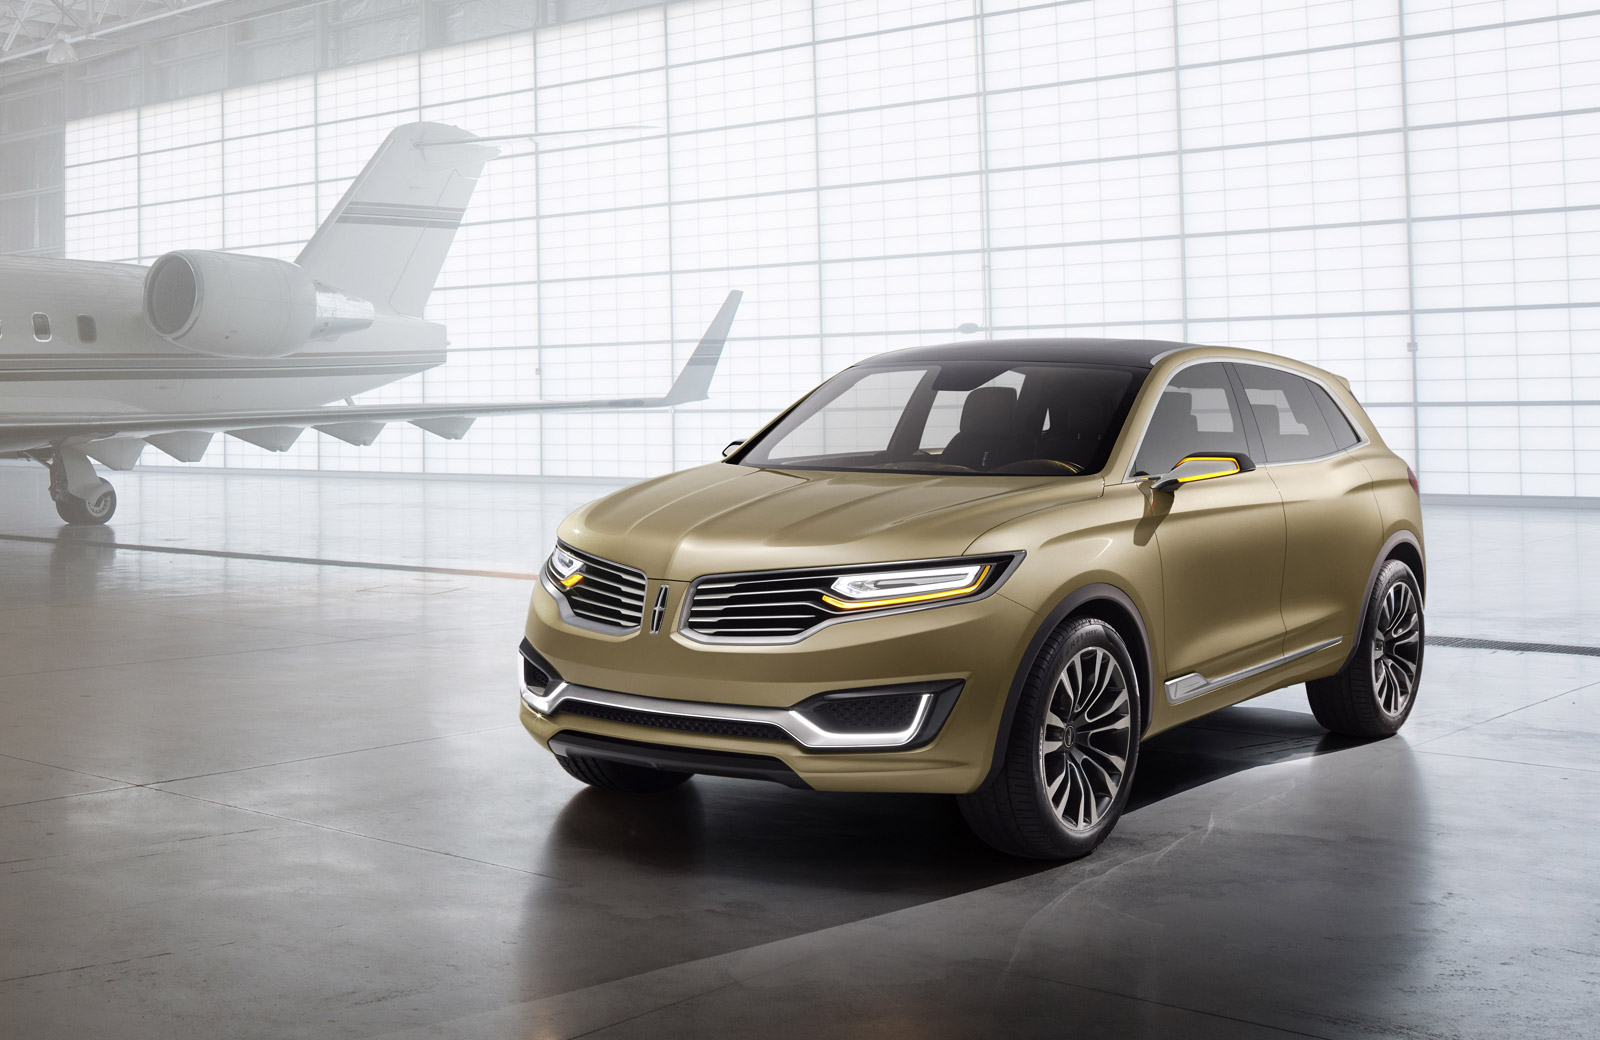 19 New 2019 Lincoln Mkx At Beijing Motor Show Price Design and Review